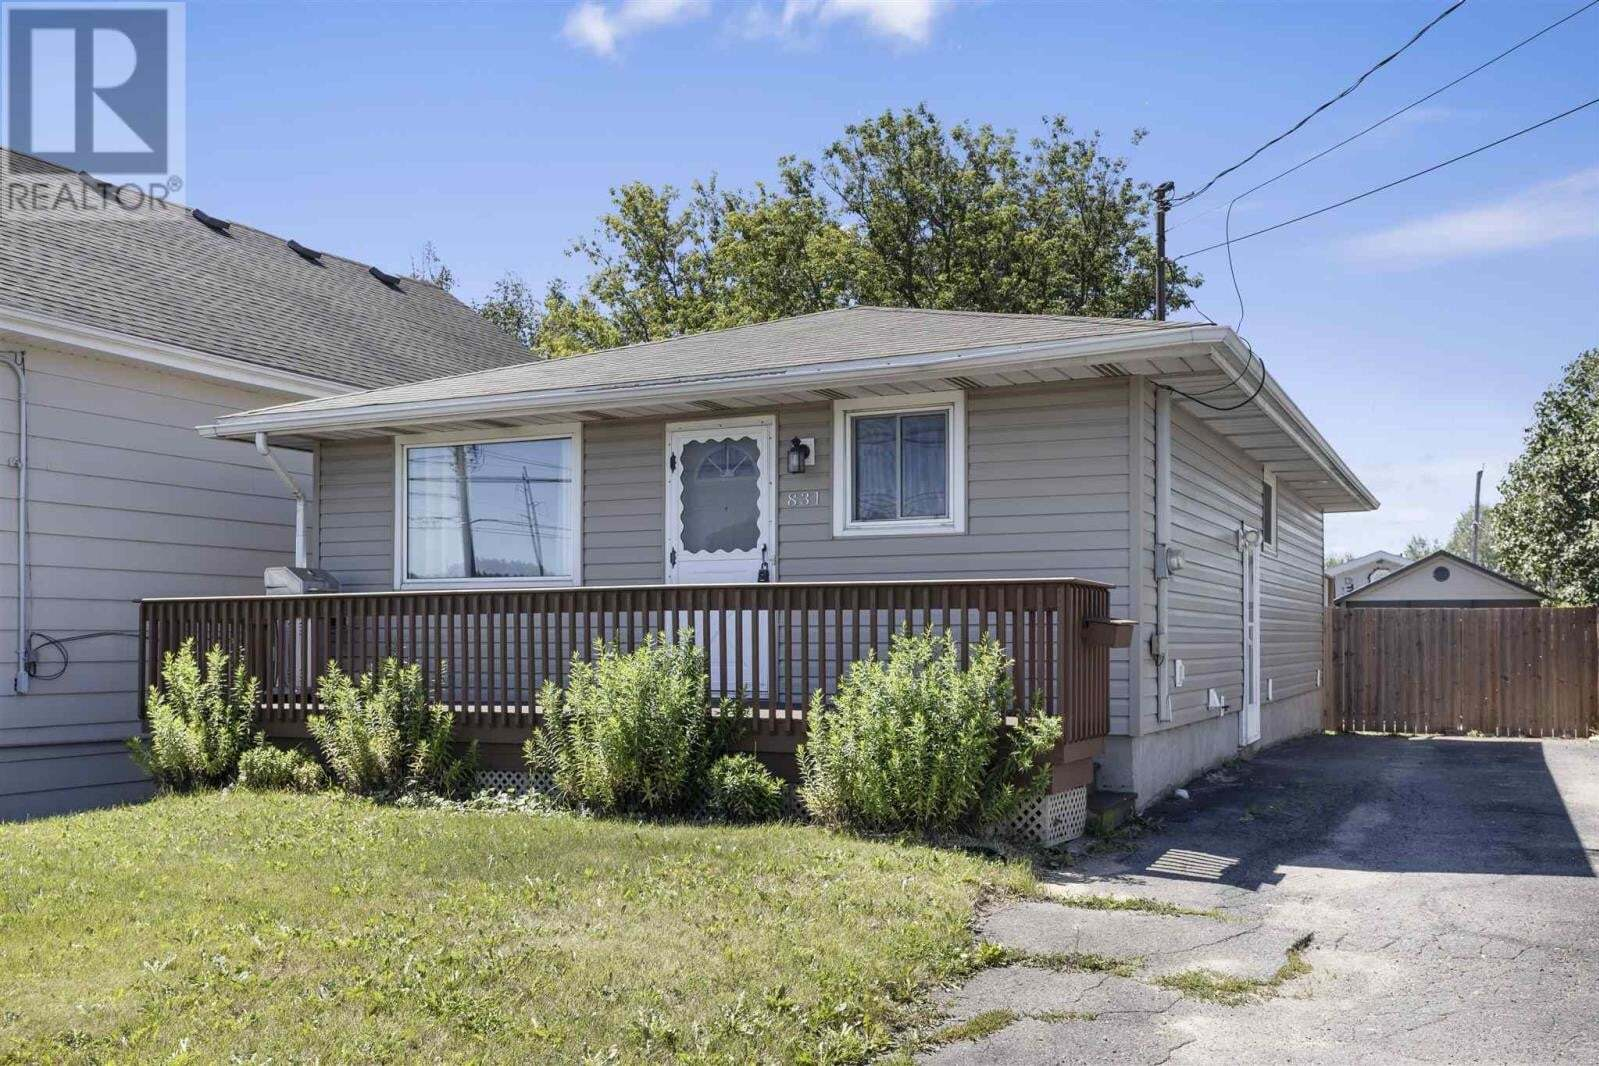 House for sale at 831 Peoples Rd Sault Ste. Marie Ontario - MLS: SM129425